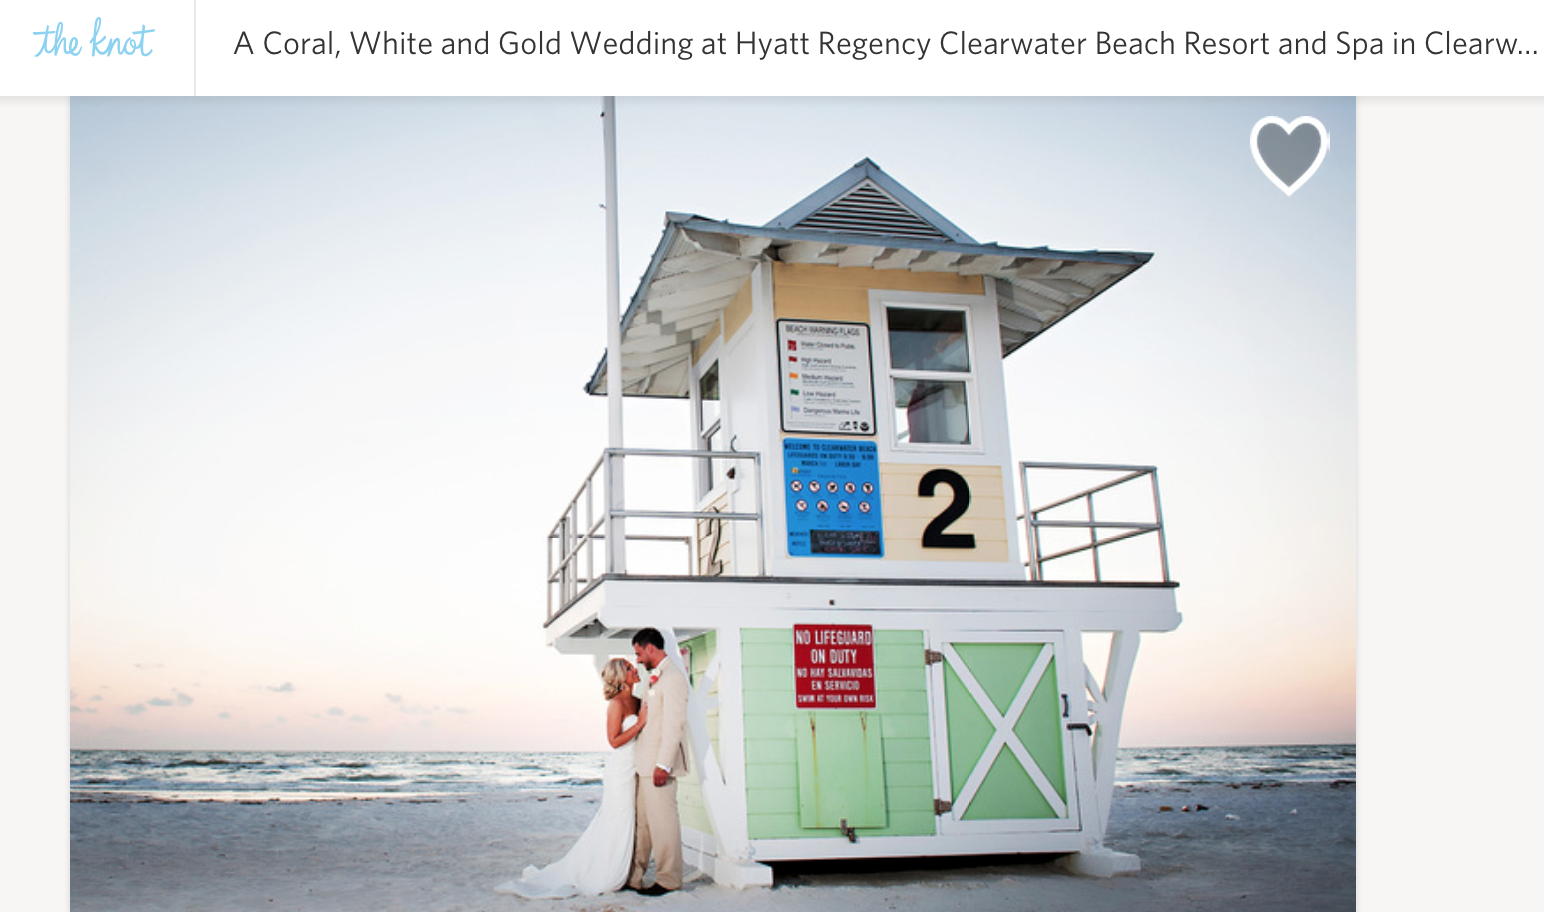 A Coral, White and Gold Wedding at Hyatt Regency Clearwater Beach Resort and Spa